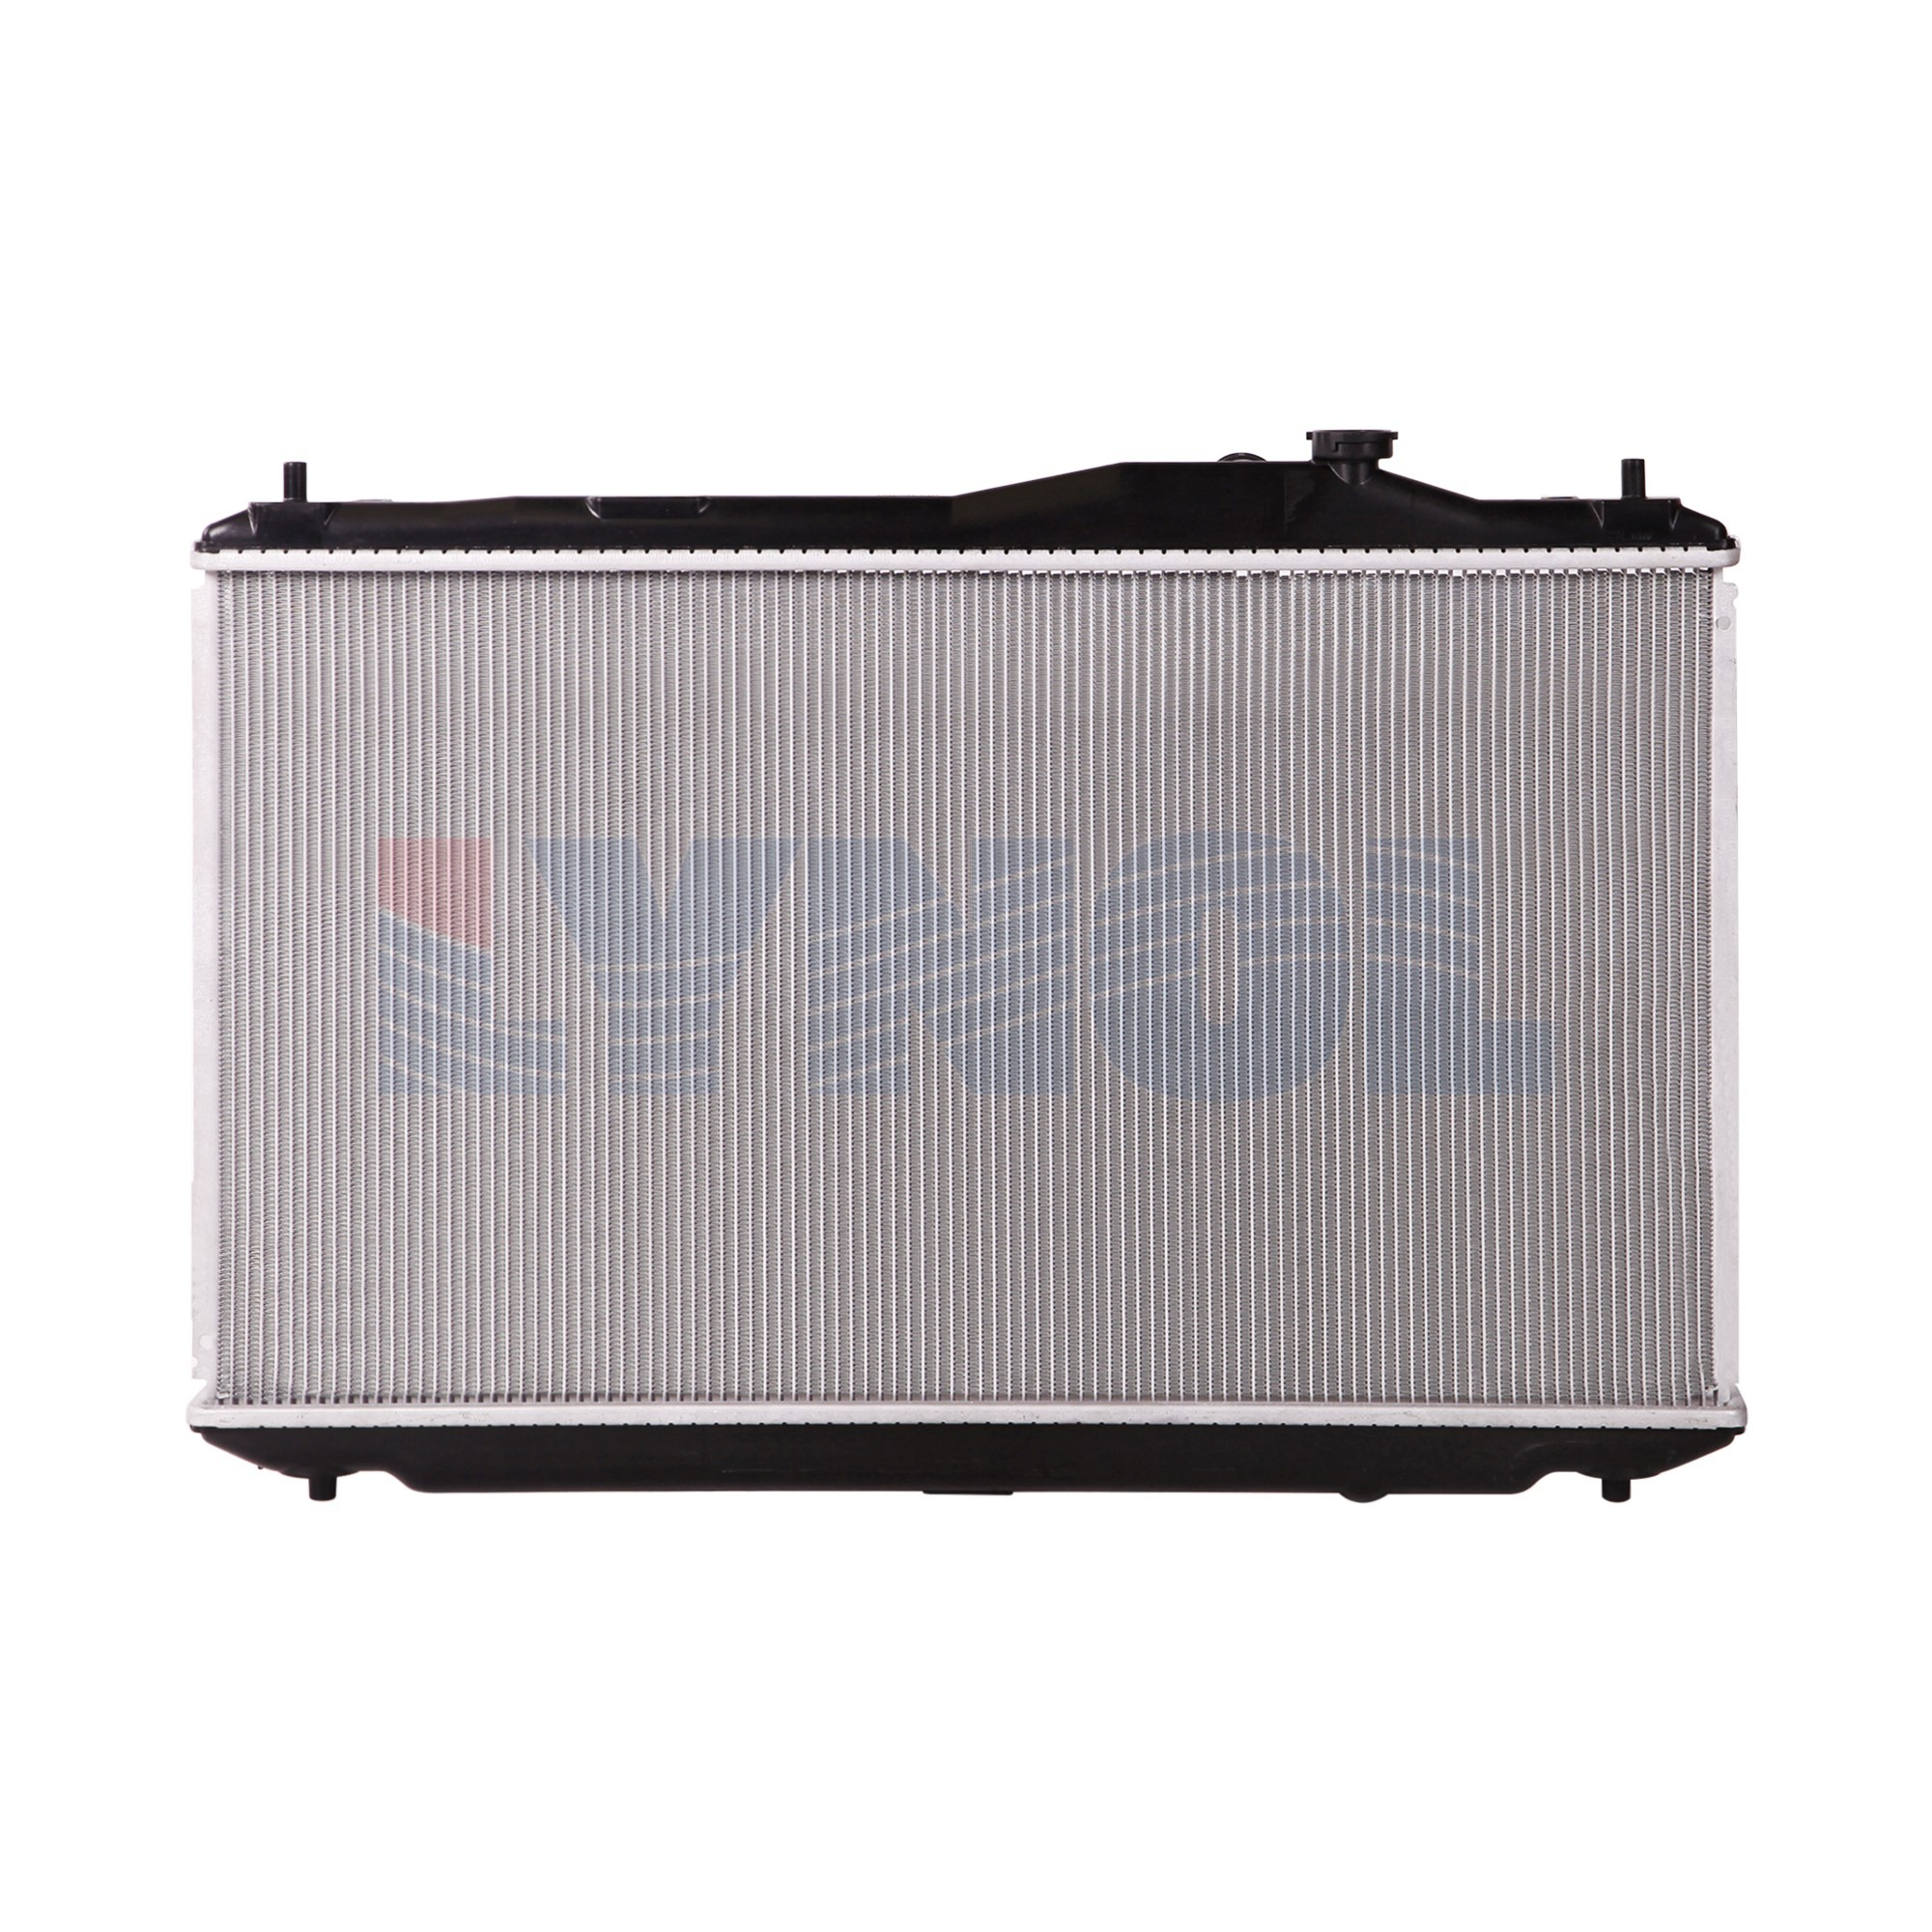 13221 - RADIATOR  - 12-15 Honda Civic  1.8L, 15-15 Honda Civic Si 2.4L